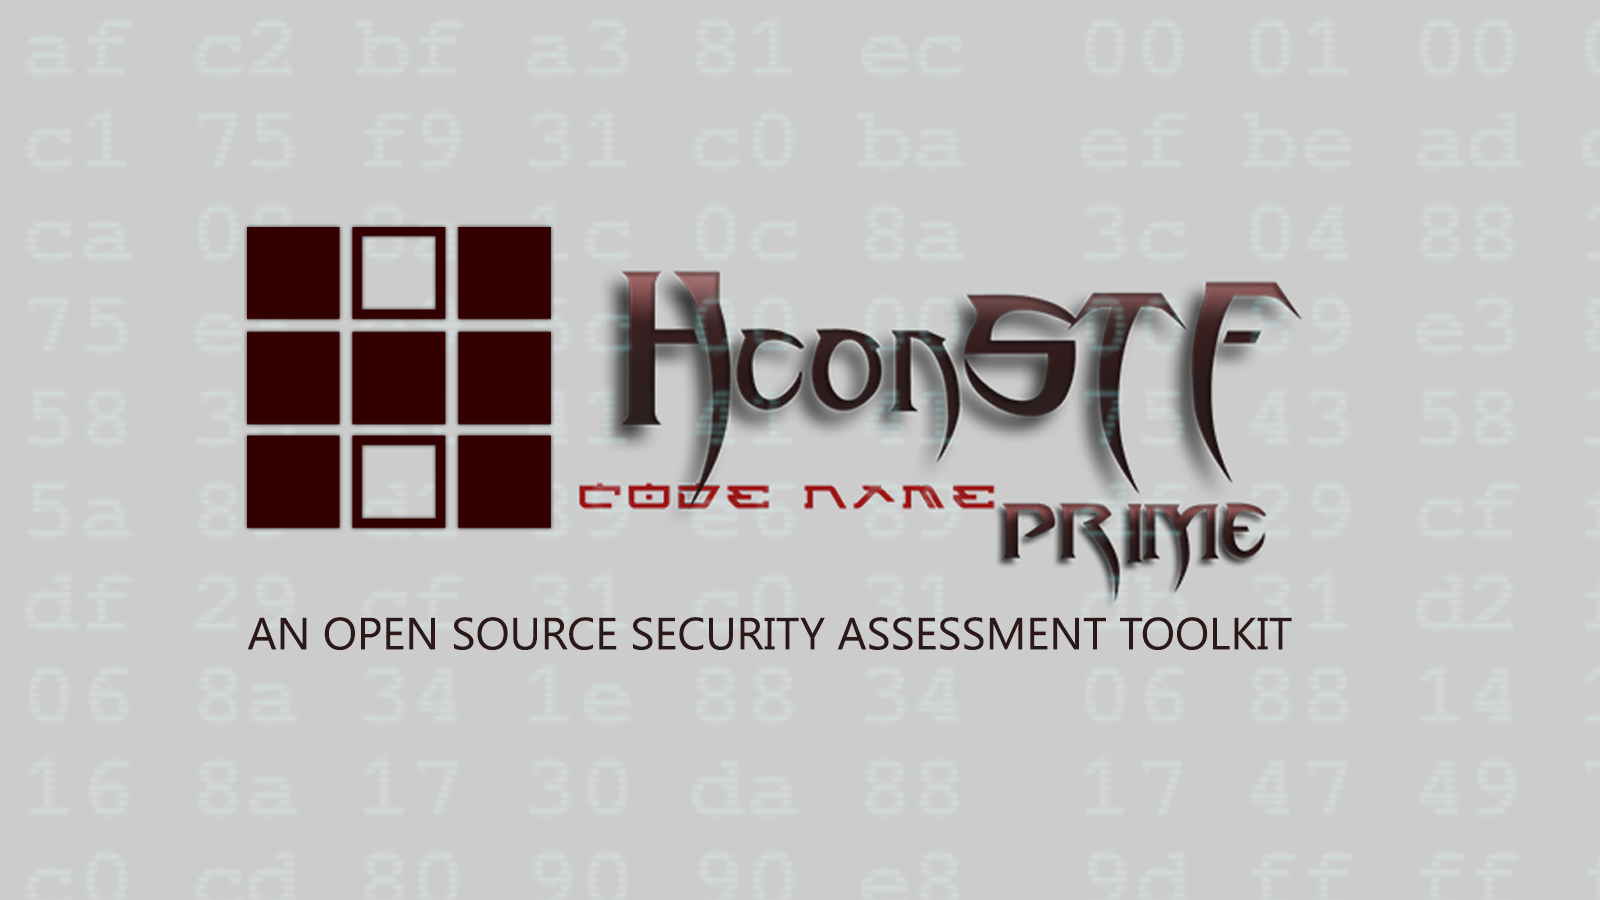 HconSTF - An Open Source Security Assessment Toolkit